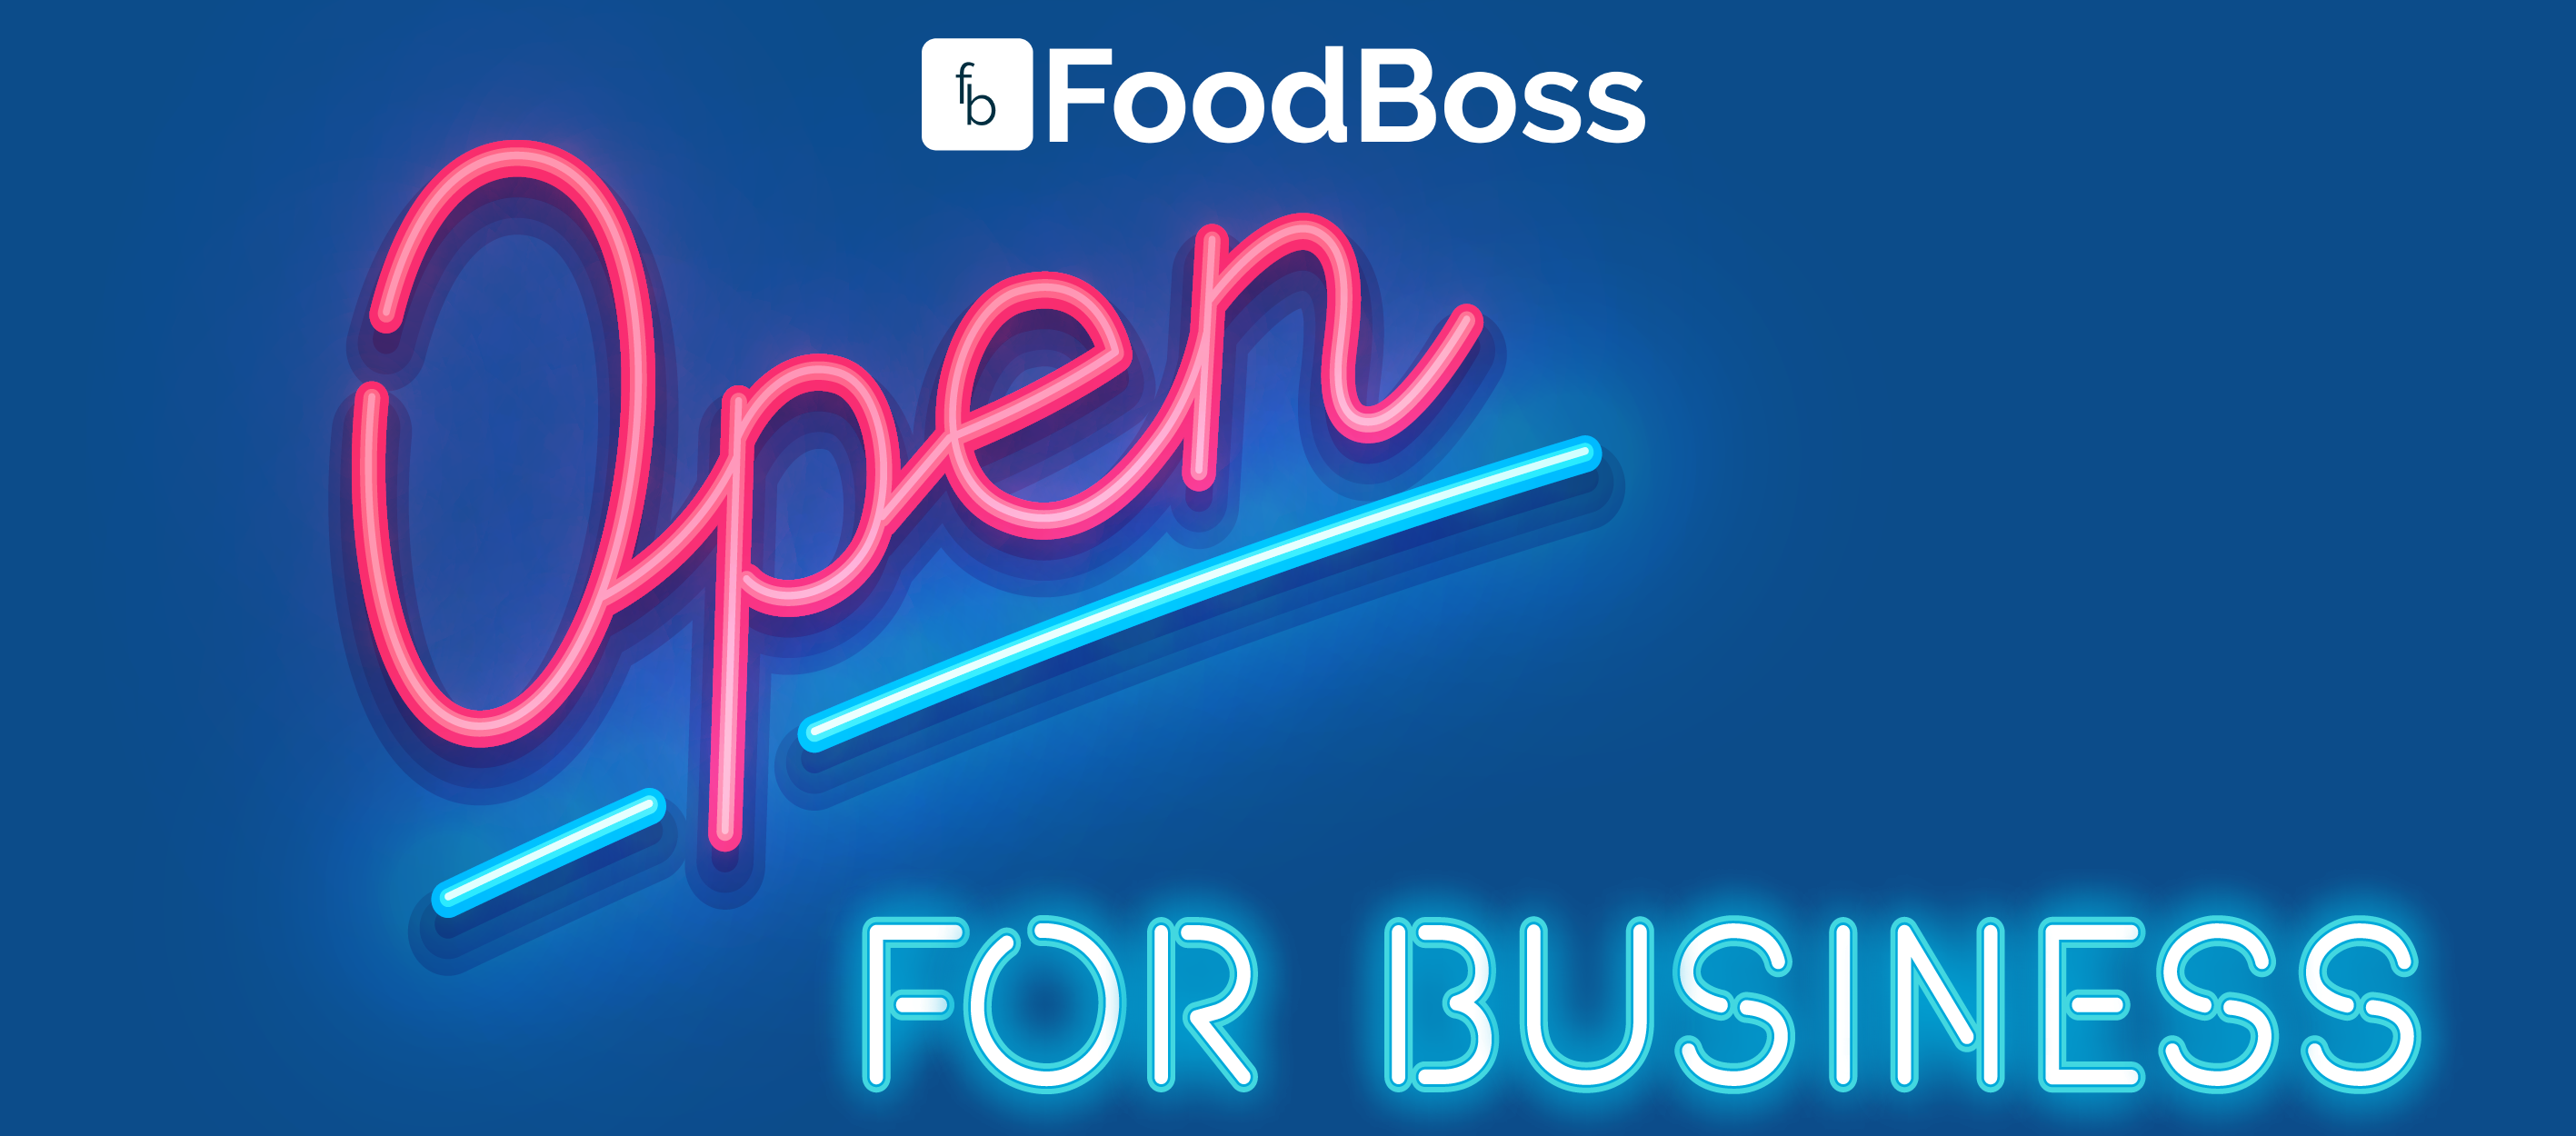 FoodBoss Launches 'Restaurants Open for Business'